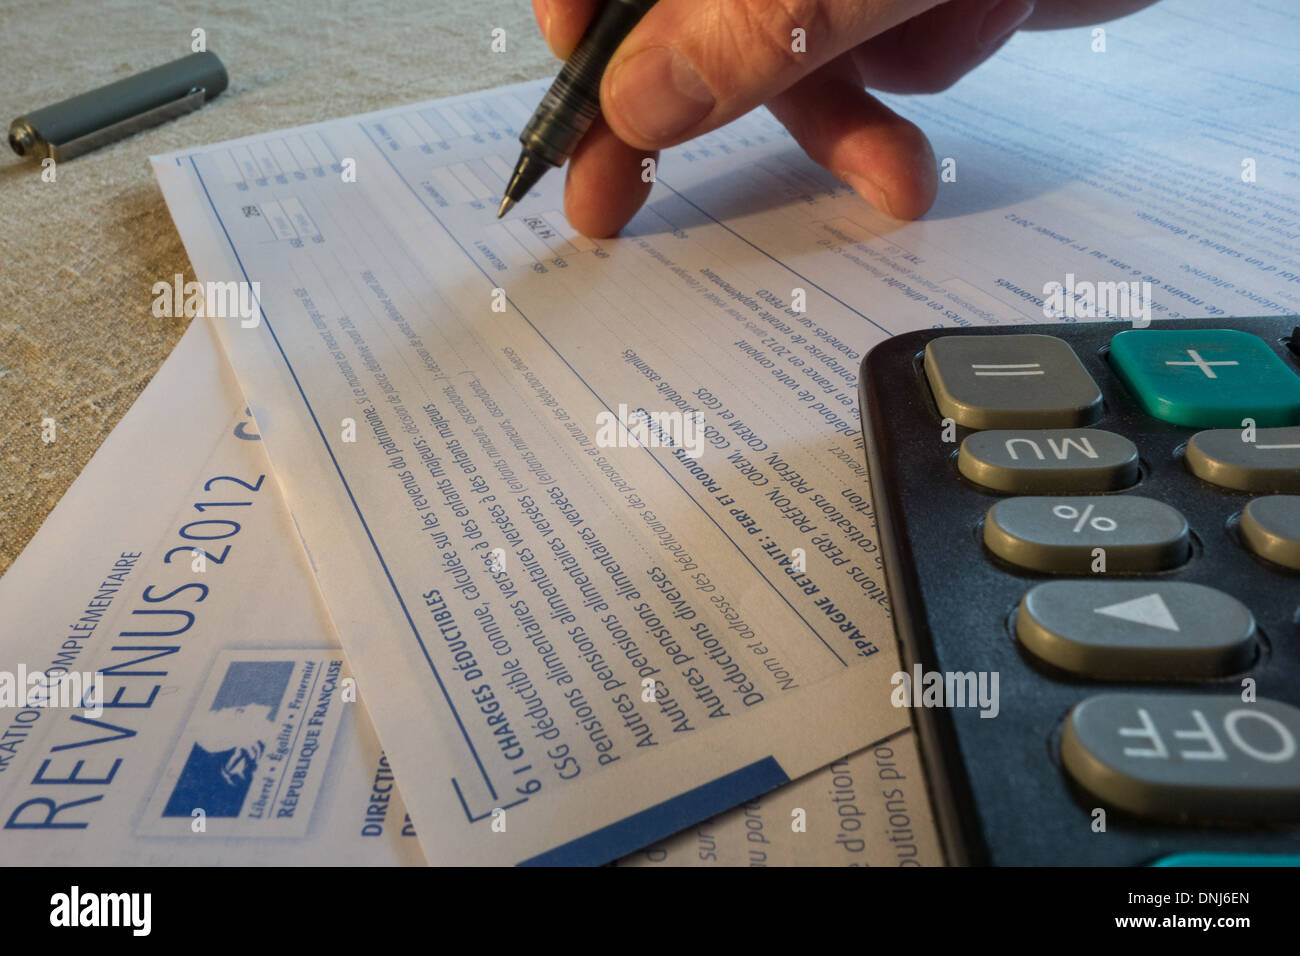 2012 INCOME TAX RETURNS FOR INDIVIDUALS (DEDUCTIBLE EXPENSES, PENSIONS, RETIREMENT PLANS) - Stock Image